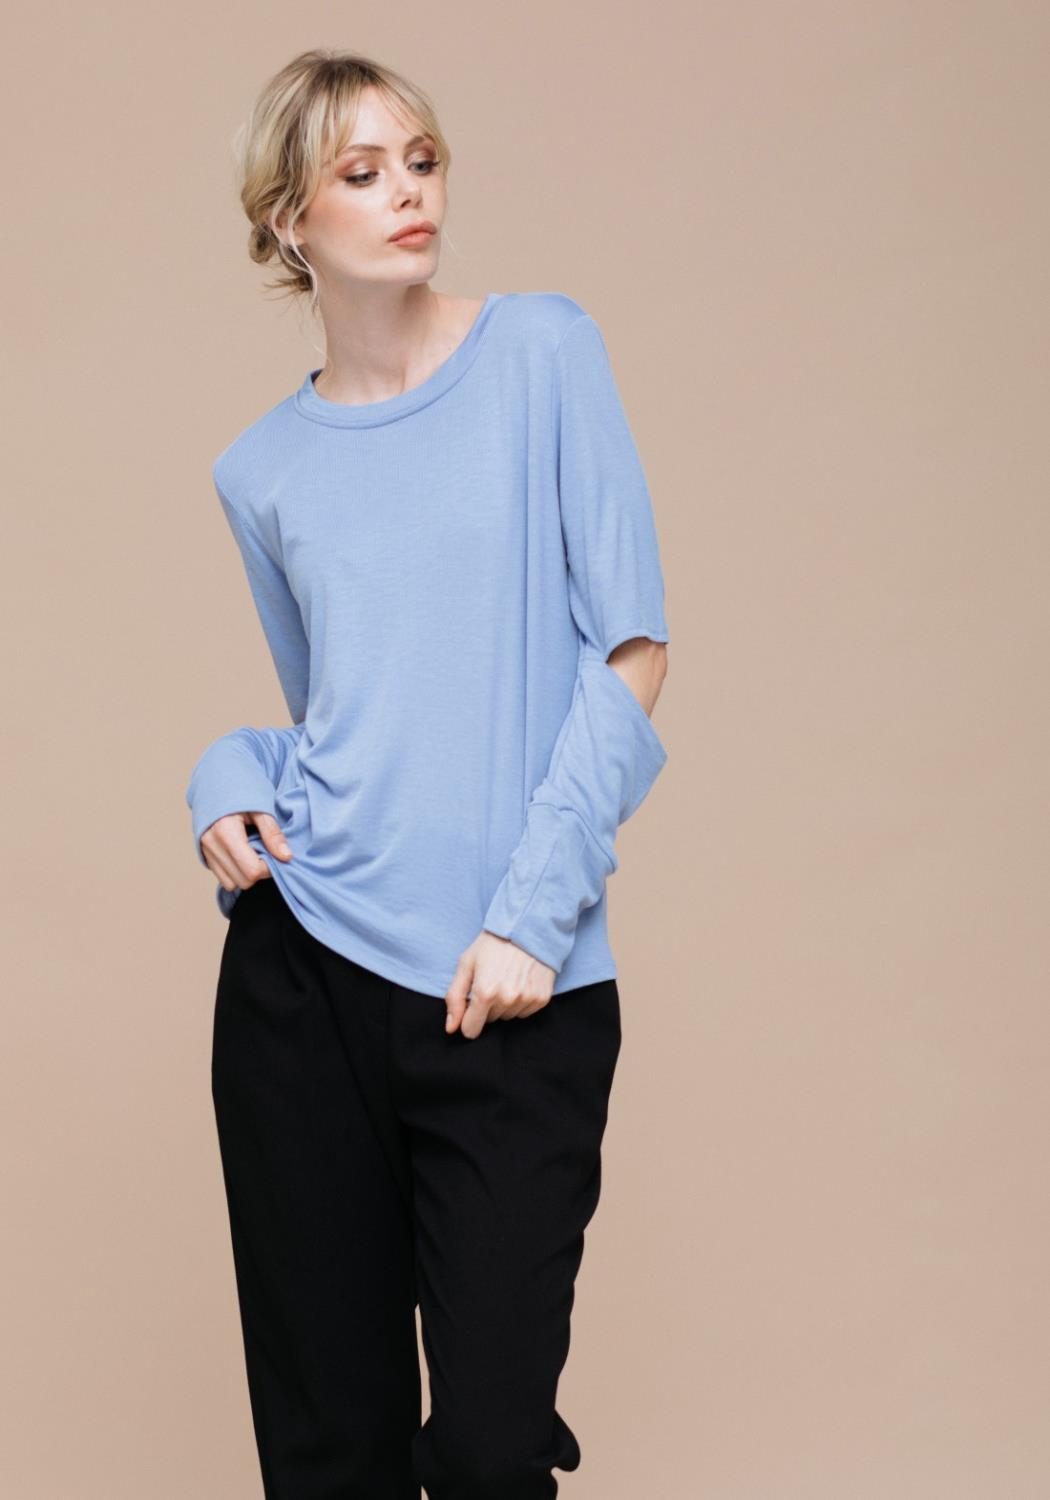 Airy Elbow Thermal Top